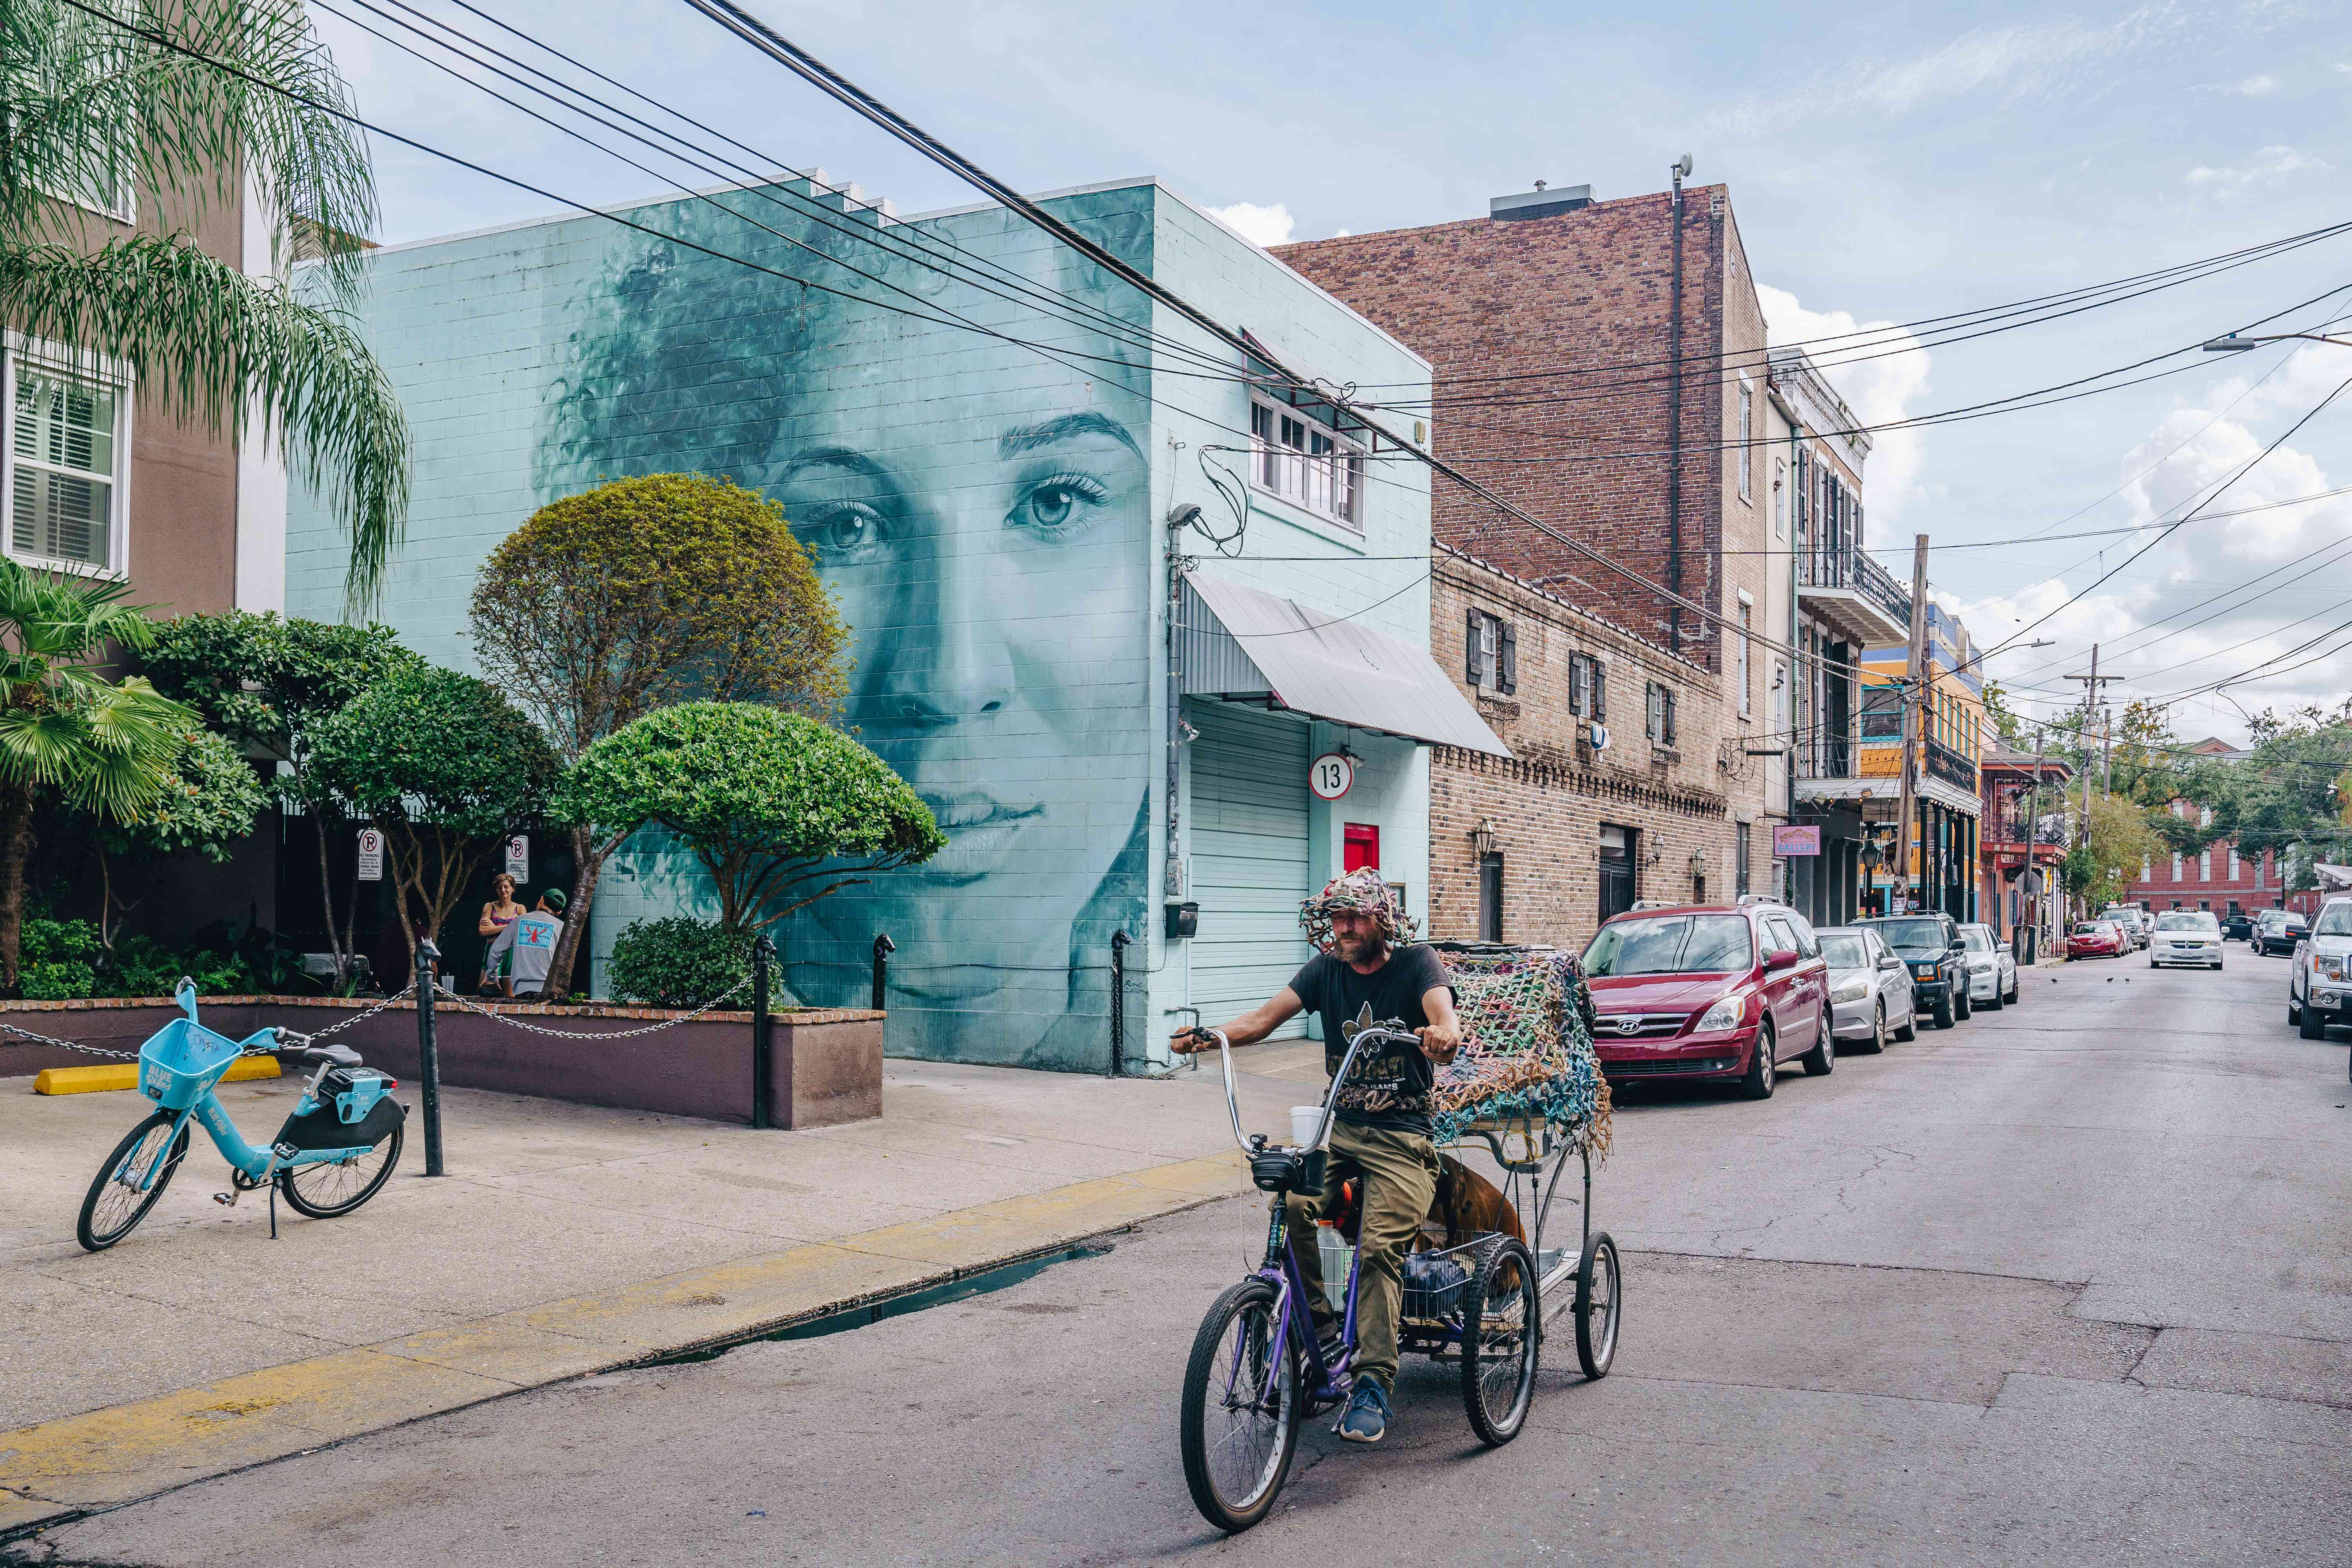 A man biking down Frenchmen street with a large portrait mural on the passing building